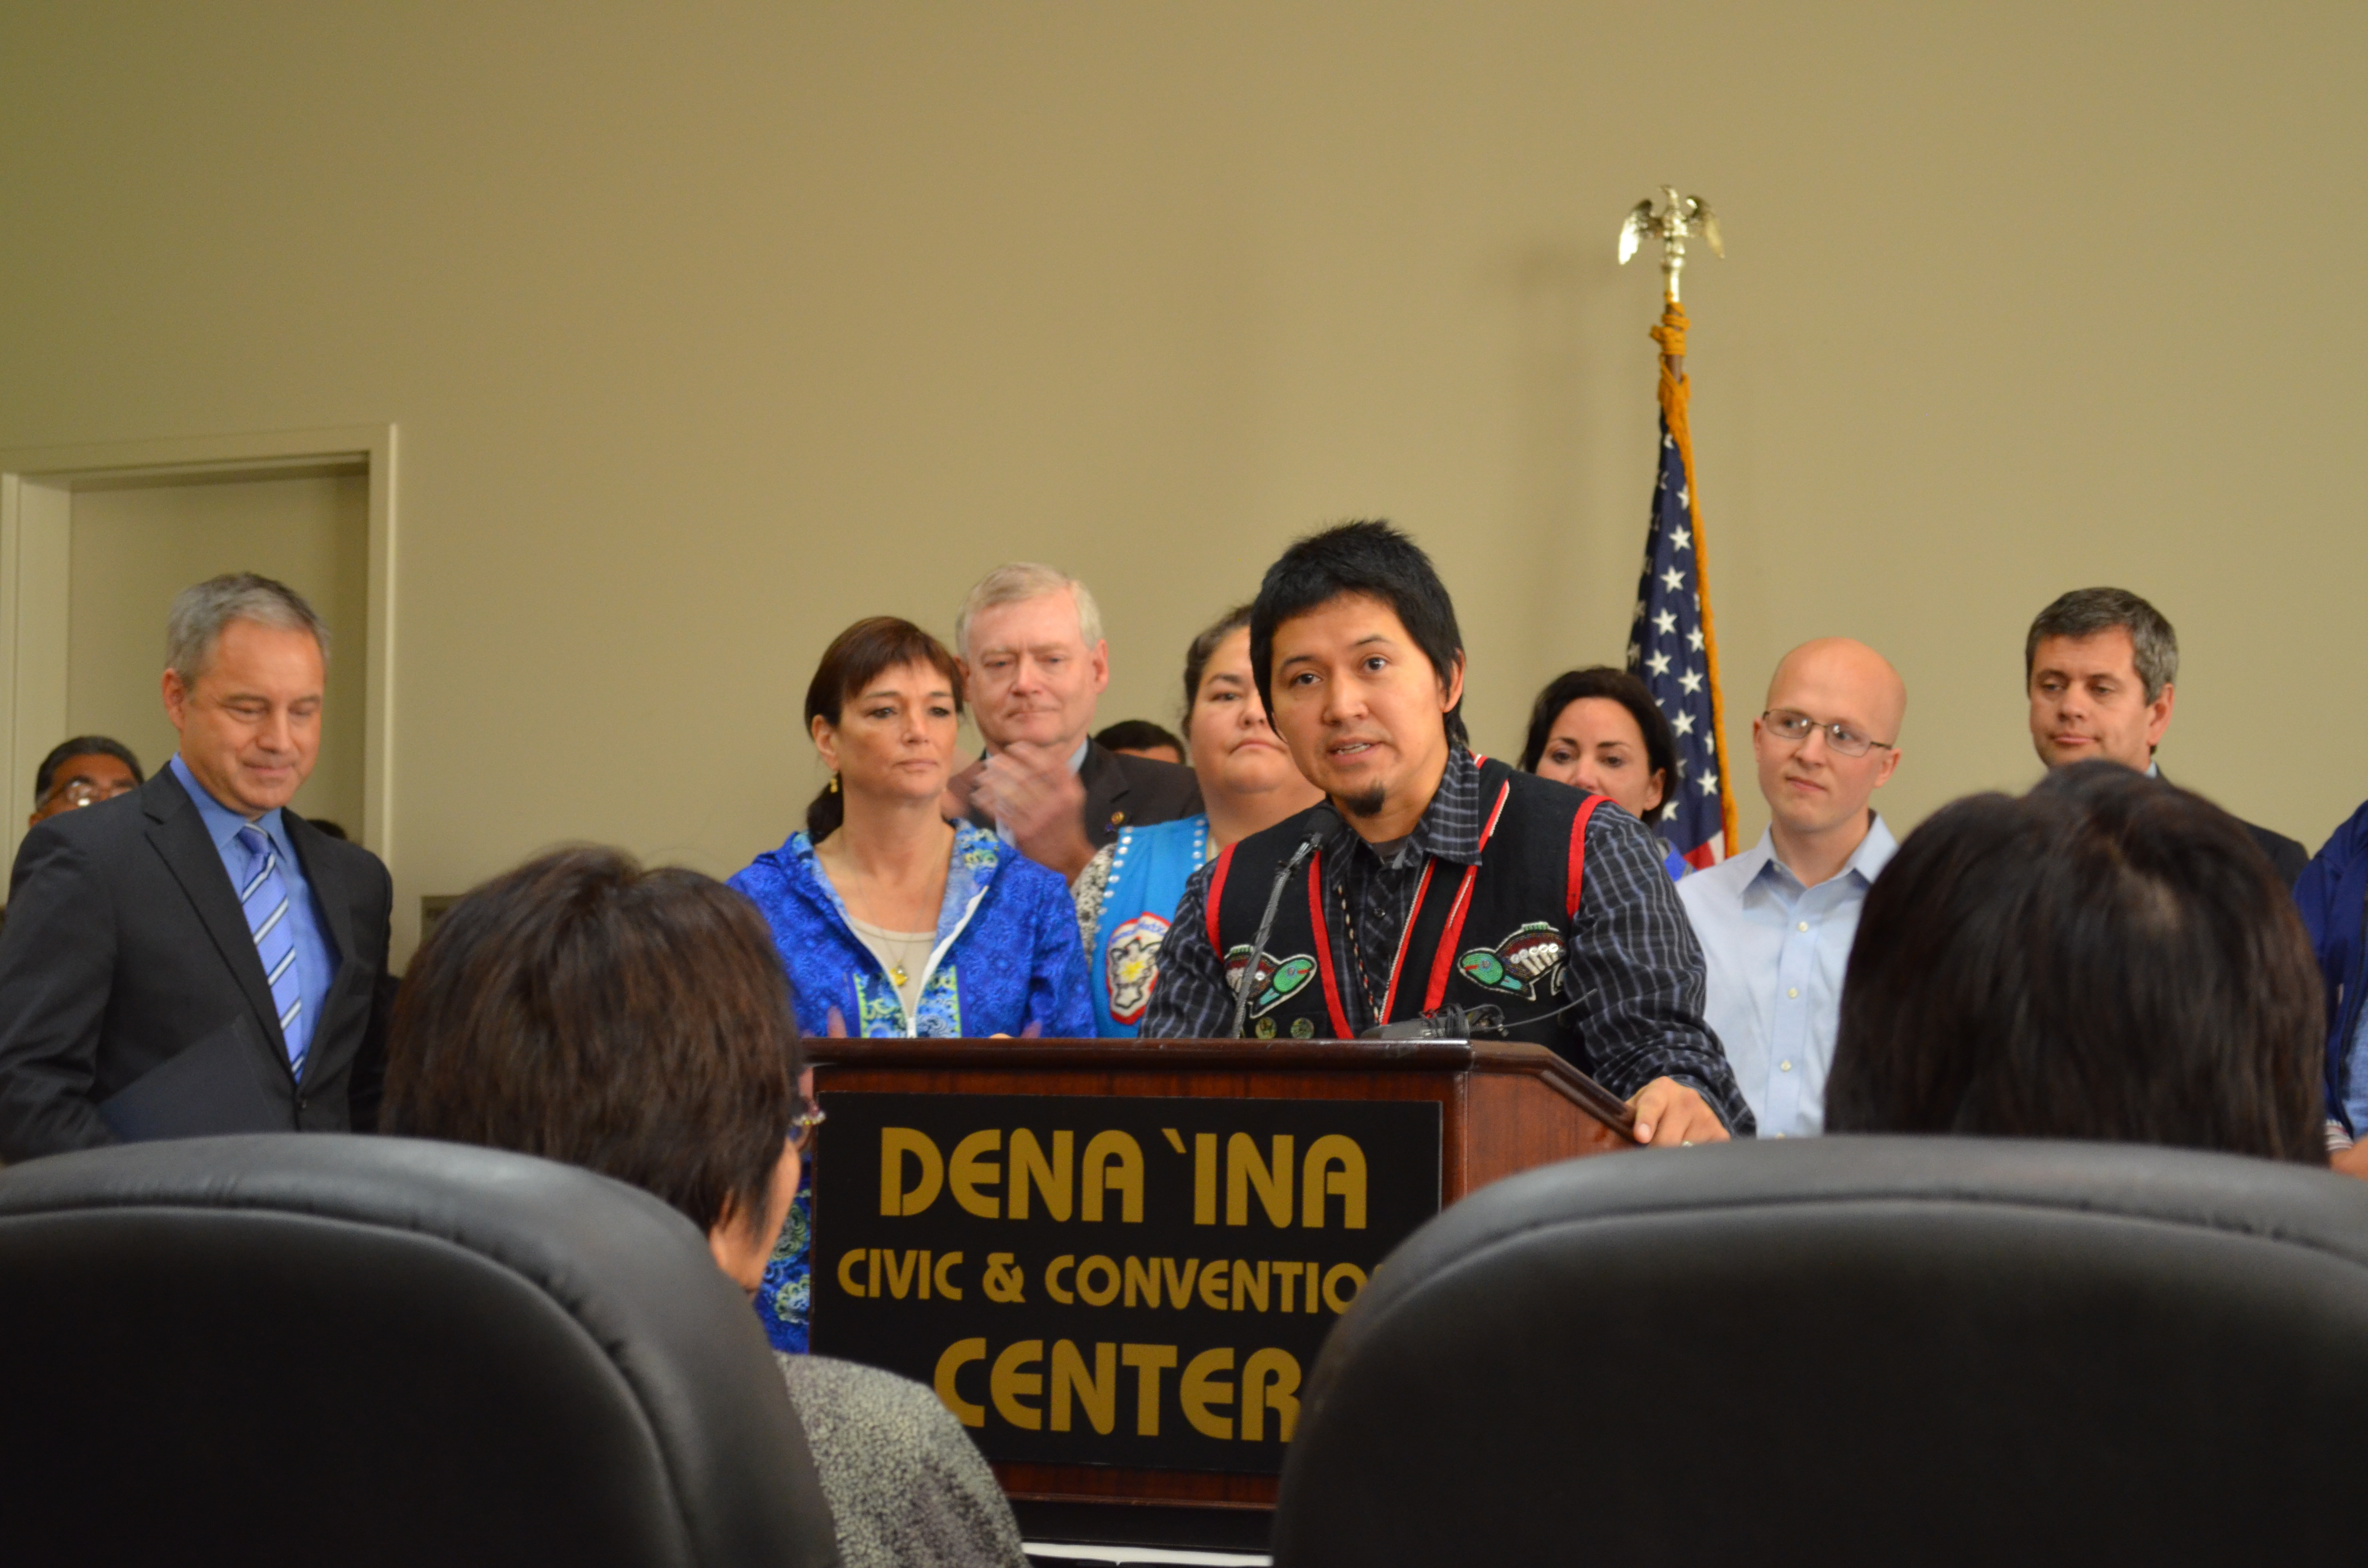 Xh'unei Lance Twitchell addresses the crowd that had gathered for the signing of HB 216, a bill making Alaska's Native languages official state languages. (Photo by Jennifer Canfield/KTOO)